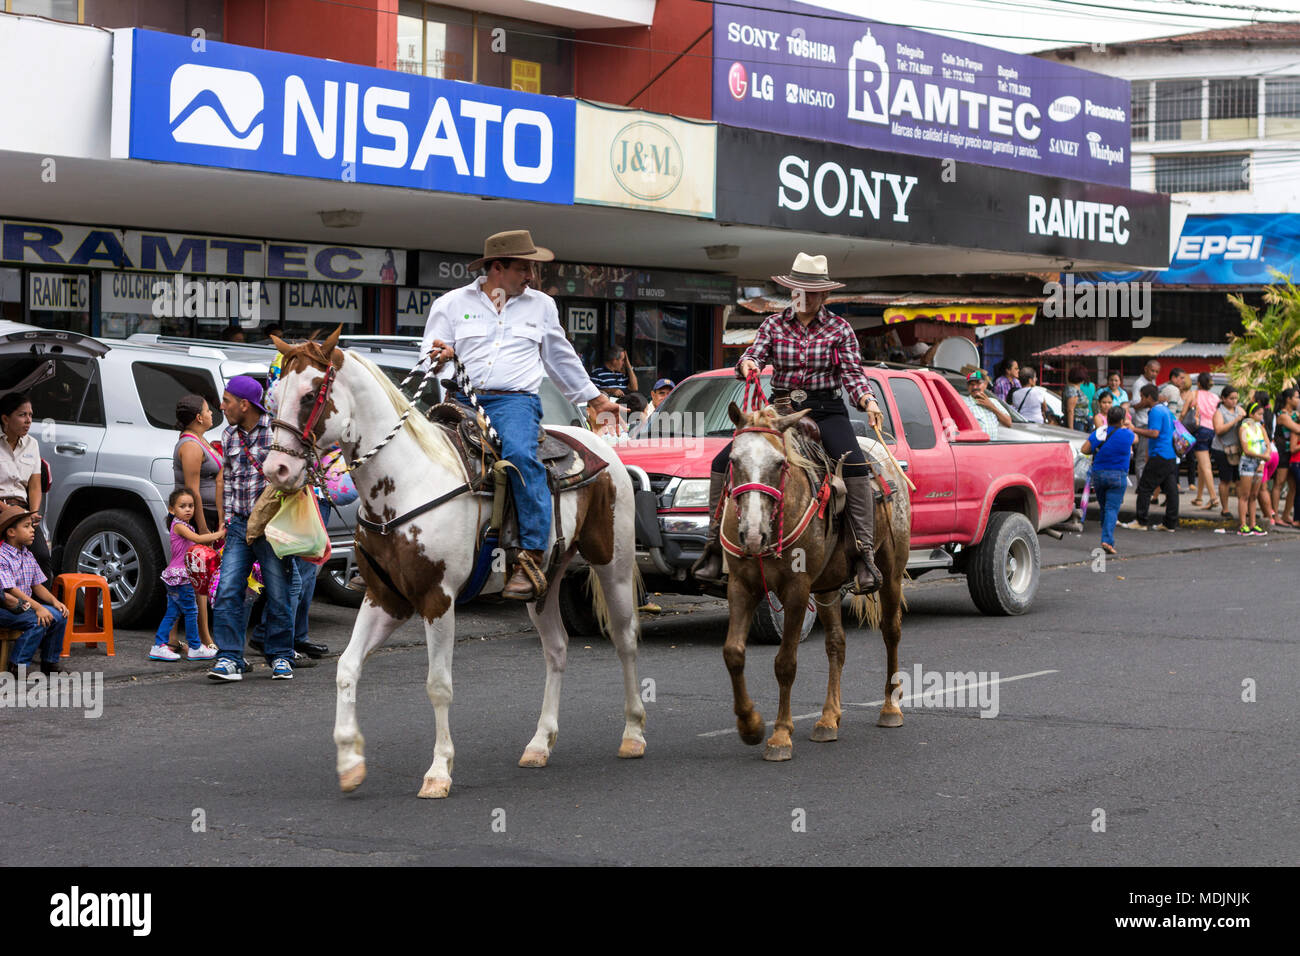 Horses and riders parade through the streets of David, Panama, in the  annual Cabalgata